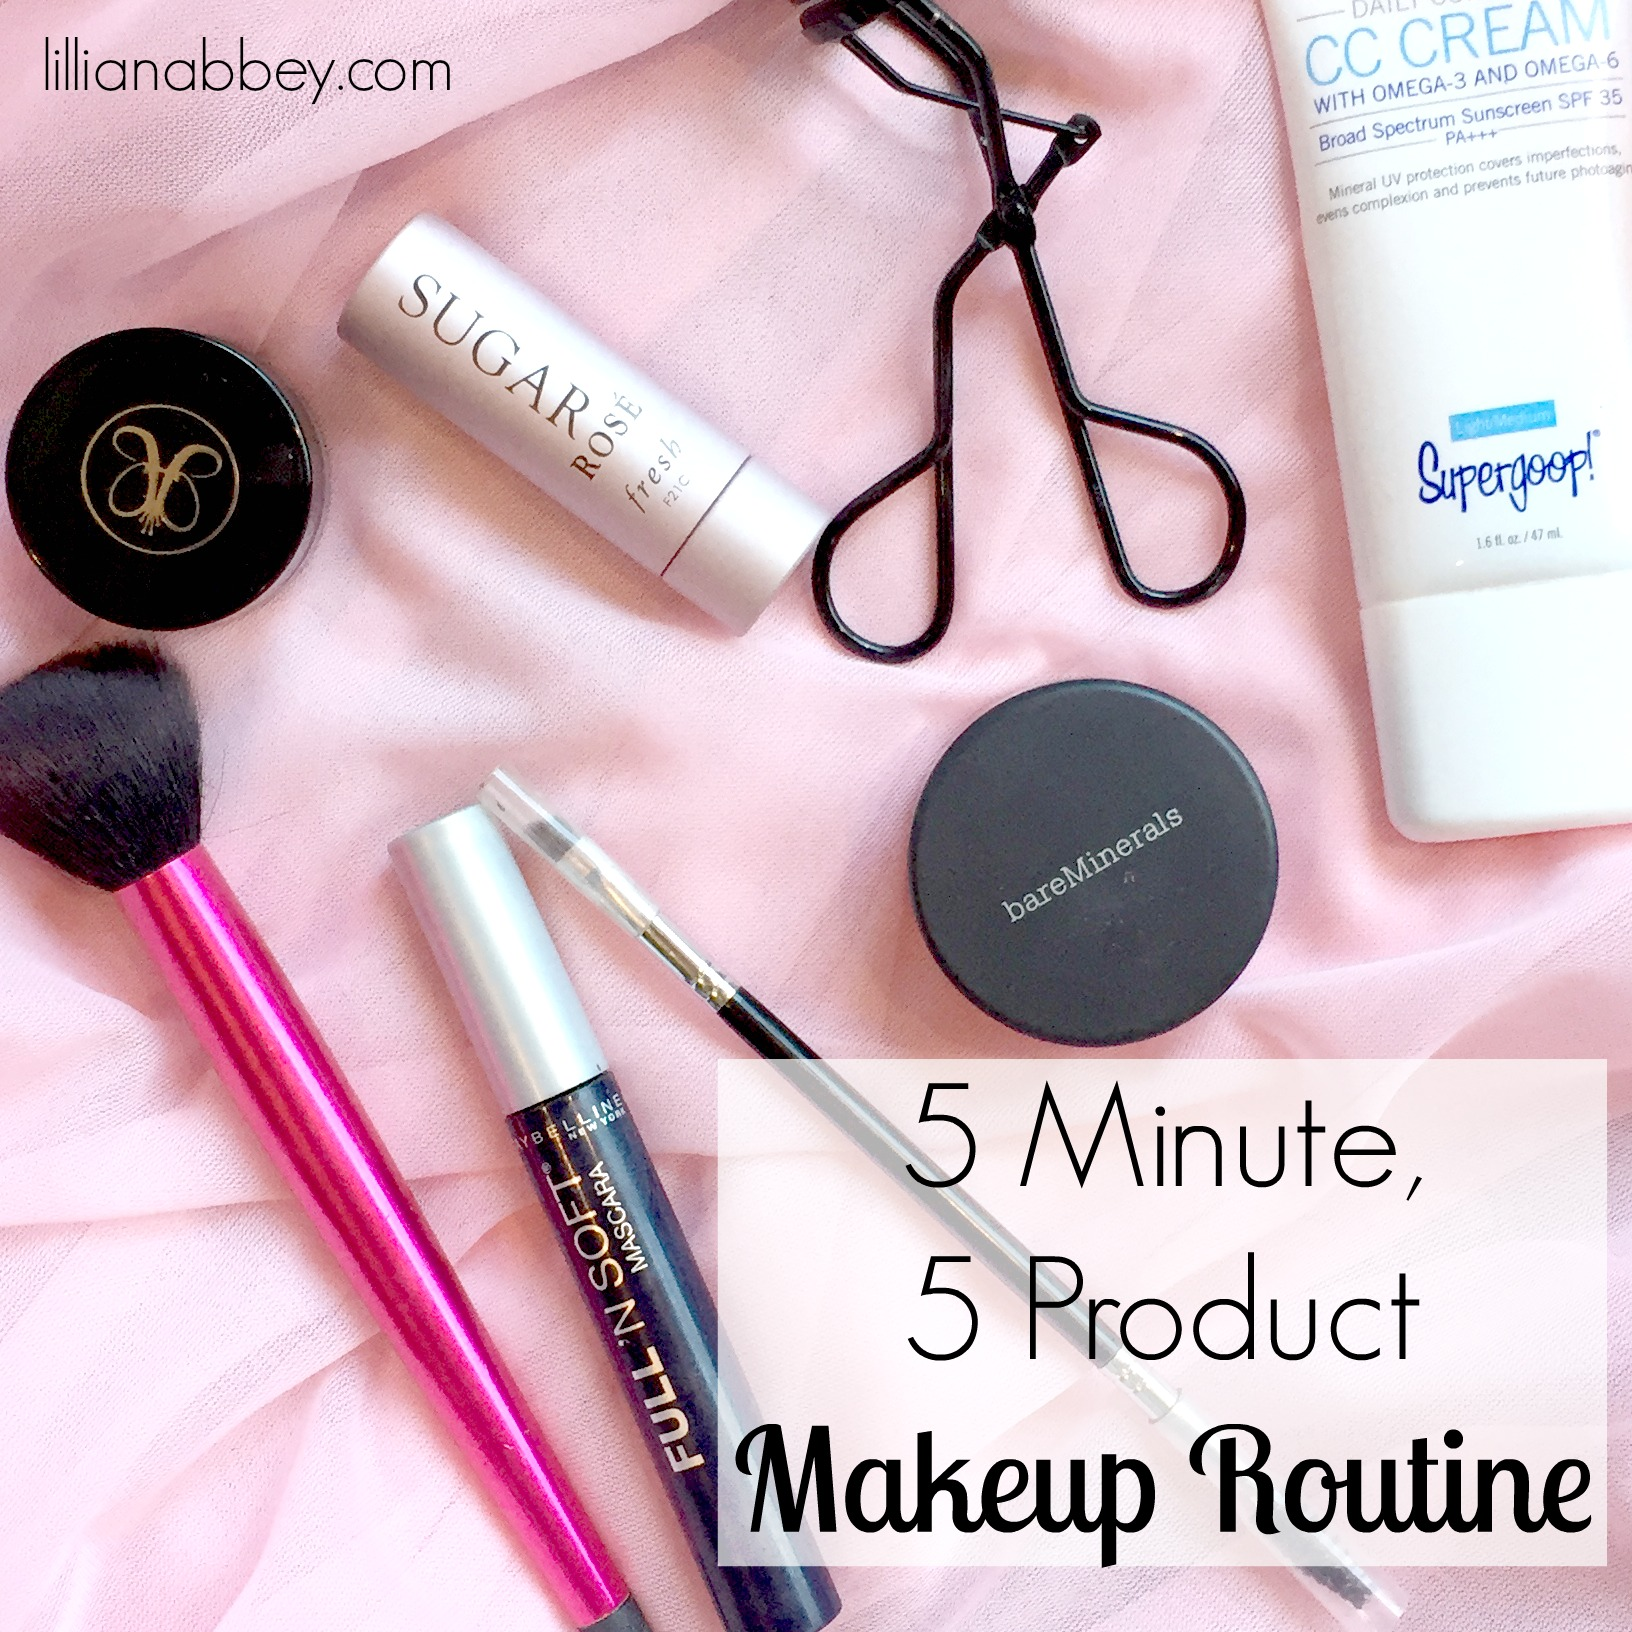 5 Minute, 5 Product Makeup Routine